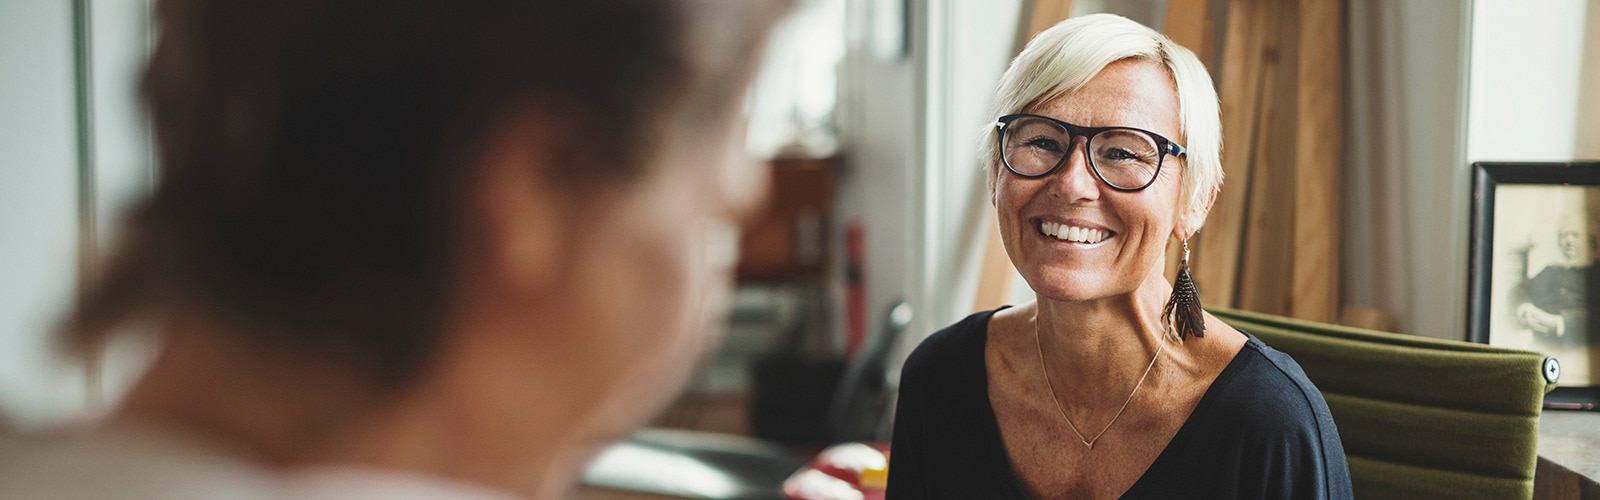 Mature woman wearing glasses smiling